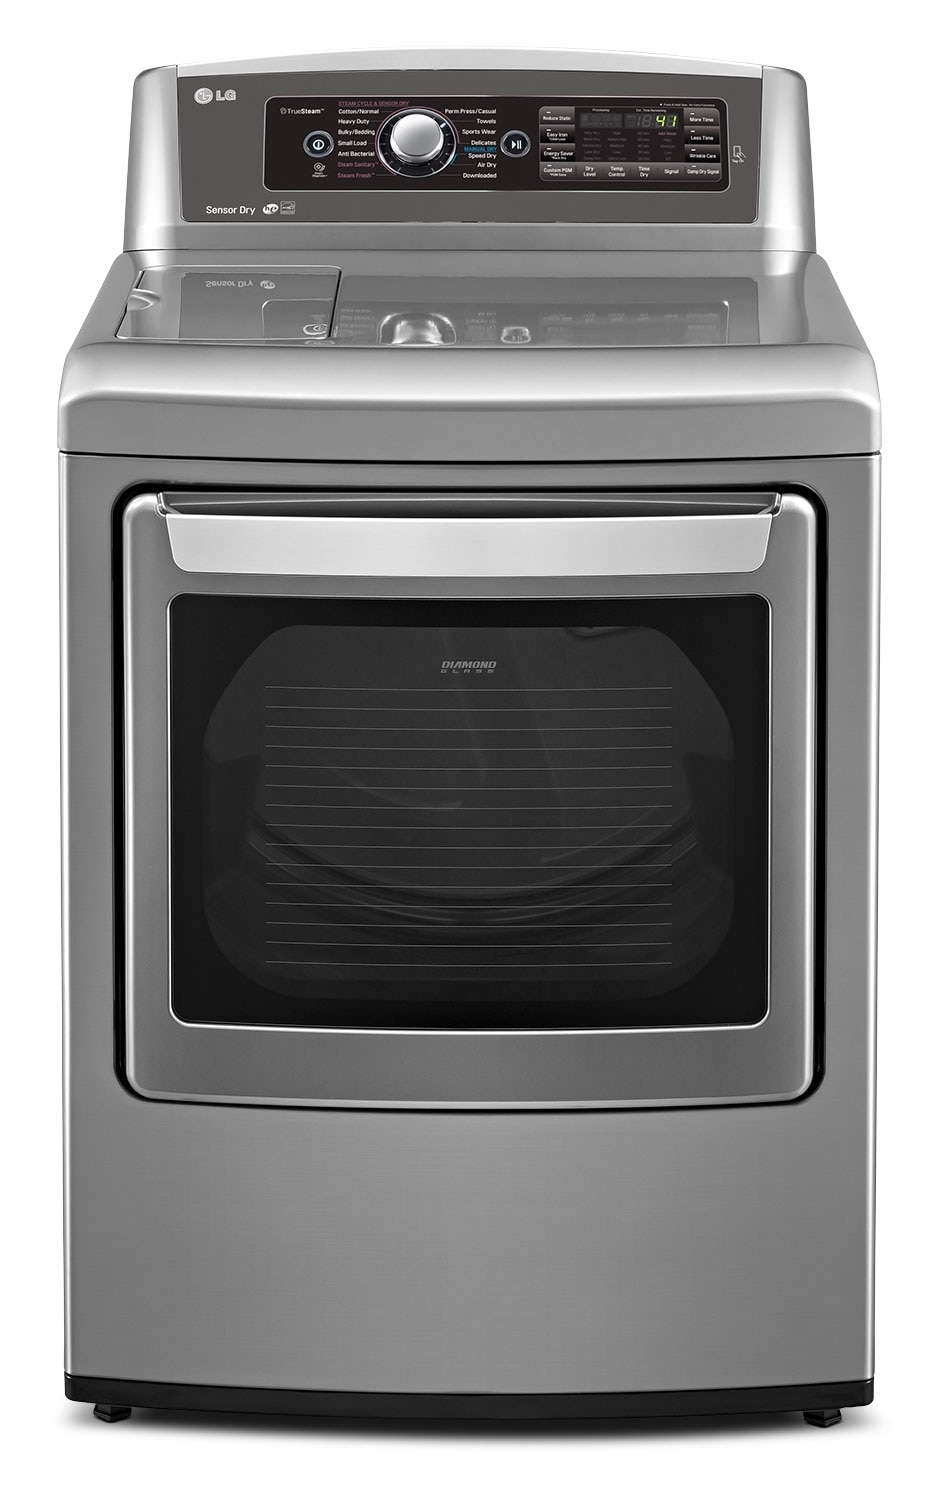 LG 7.3 Cu. Ft. Ultra-Large Capacity Gas Steam Dryer - Grey